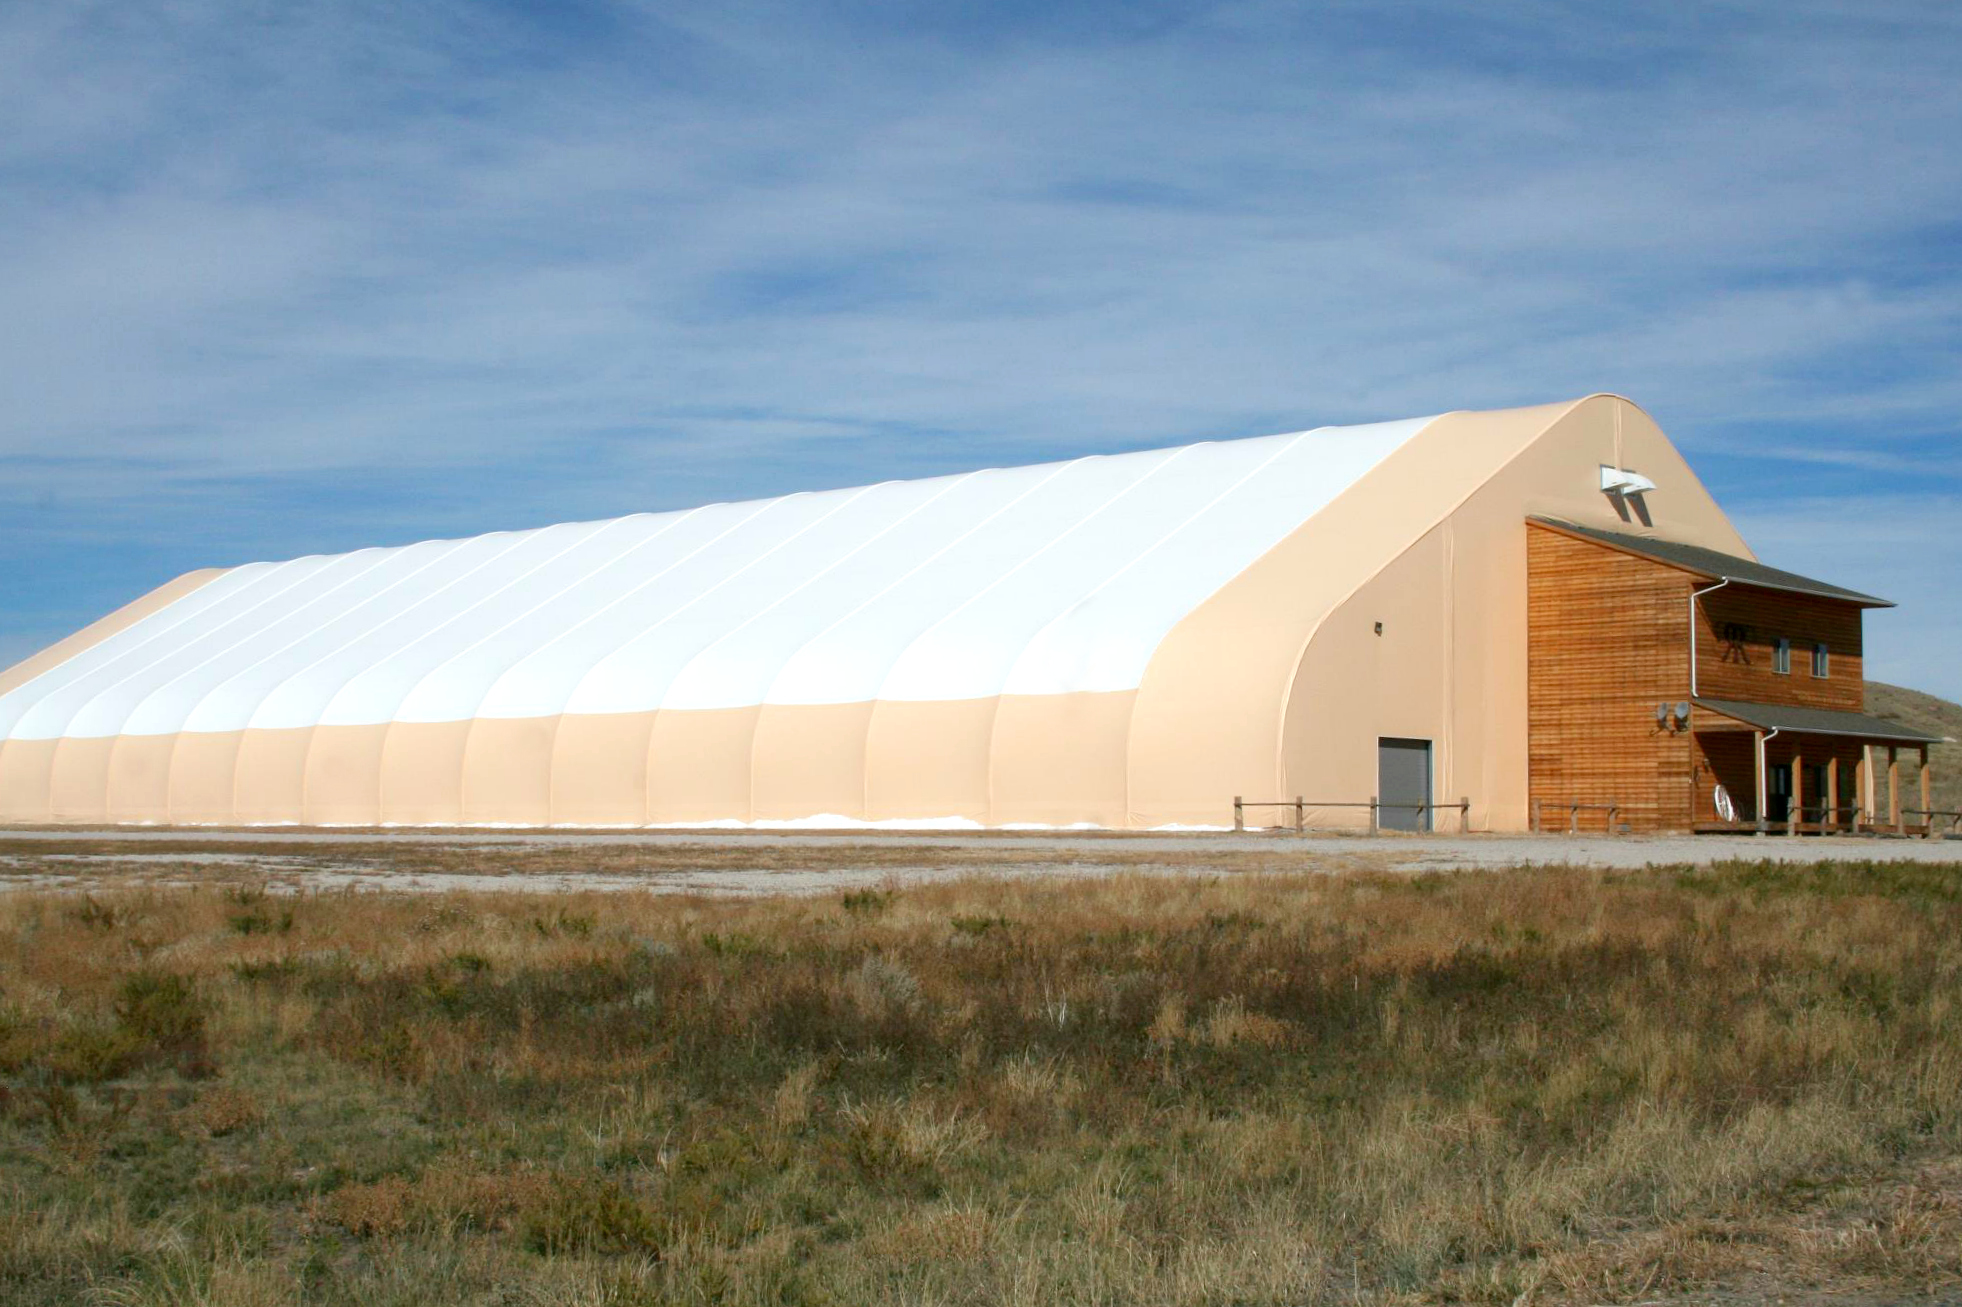 Riata Ranch Indoor Arena Cheyenne